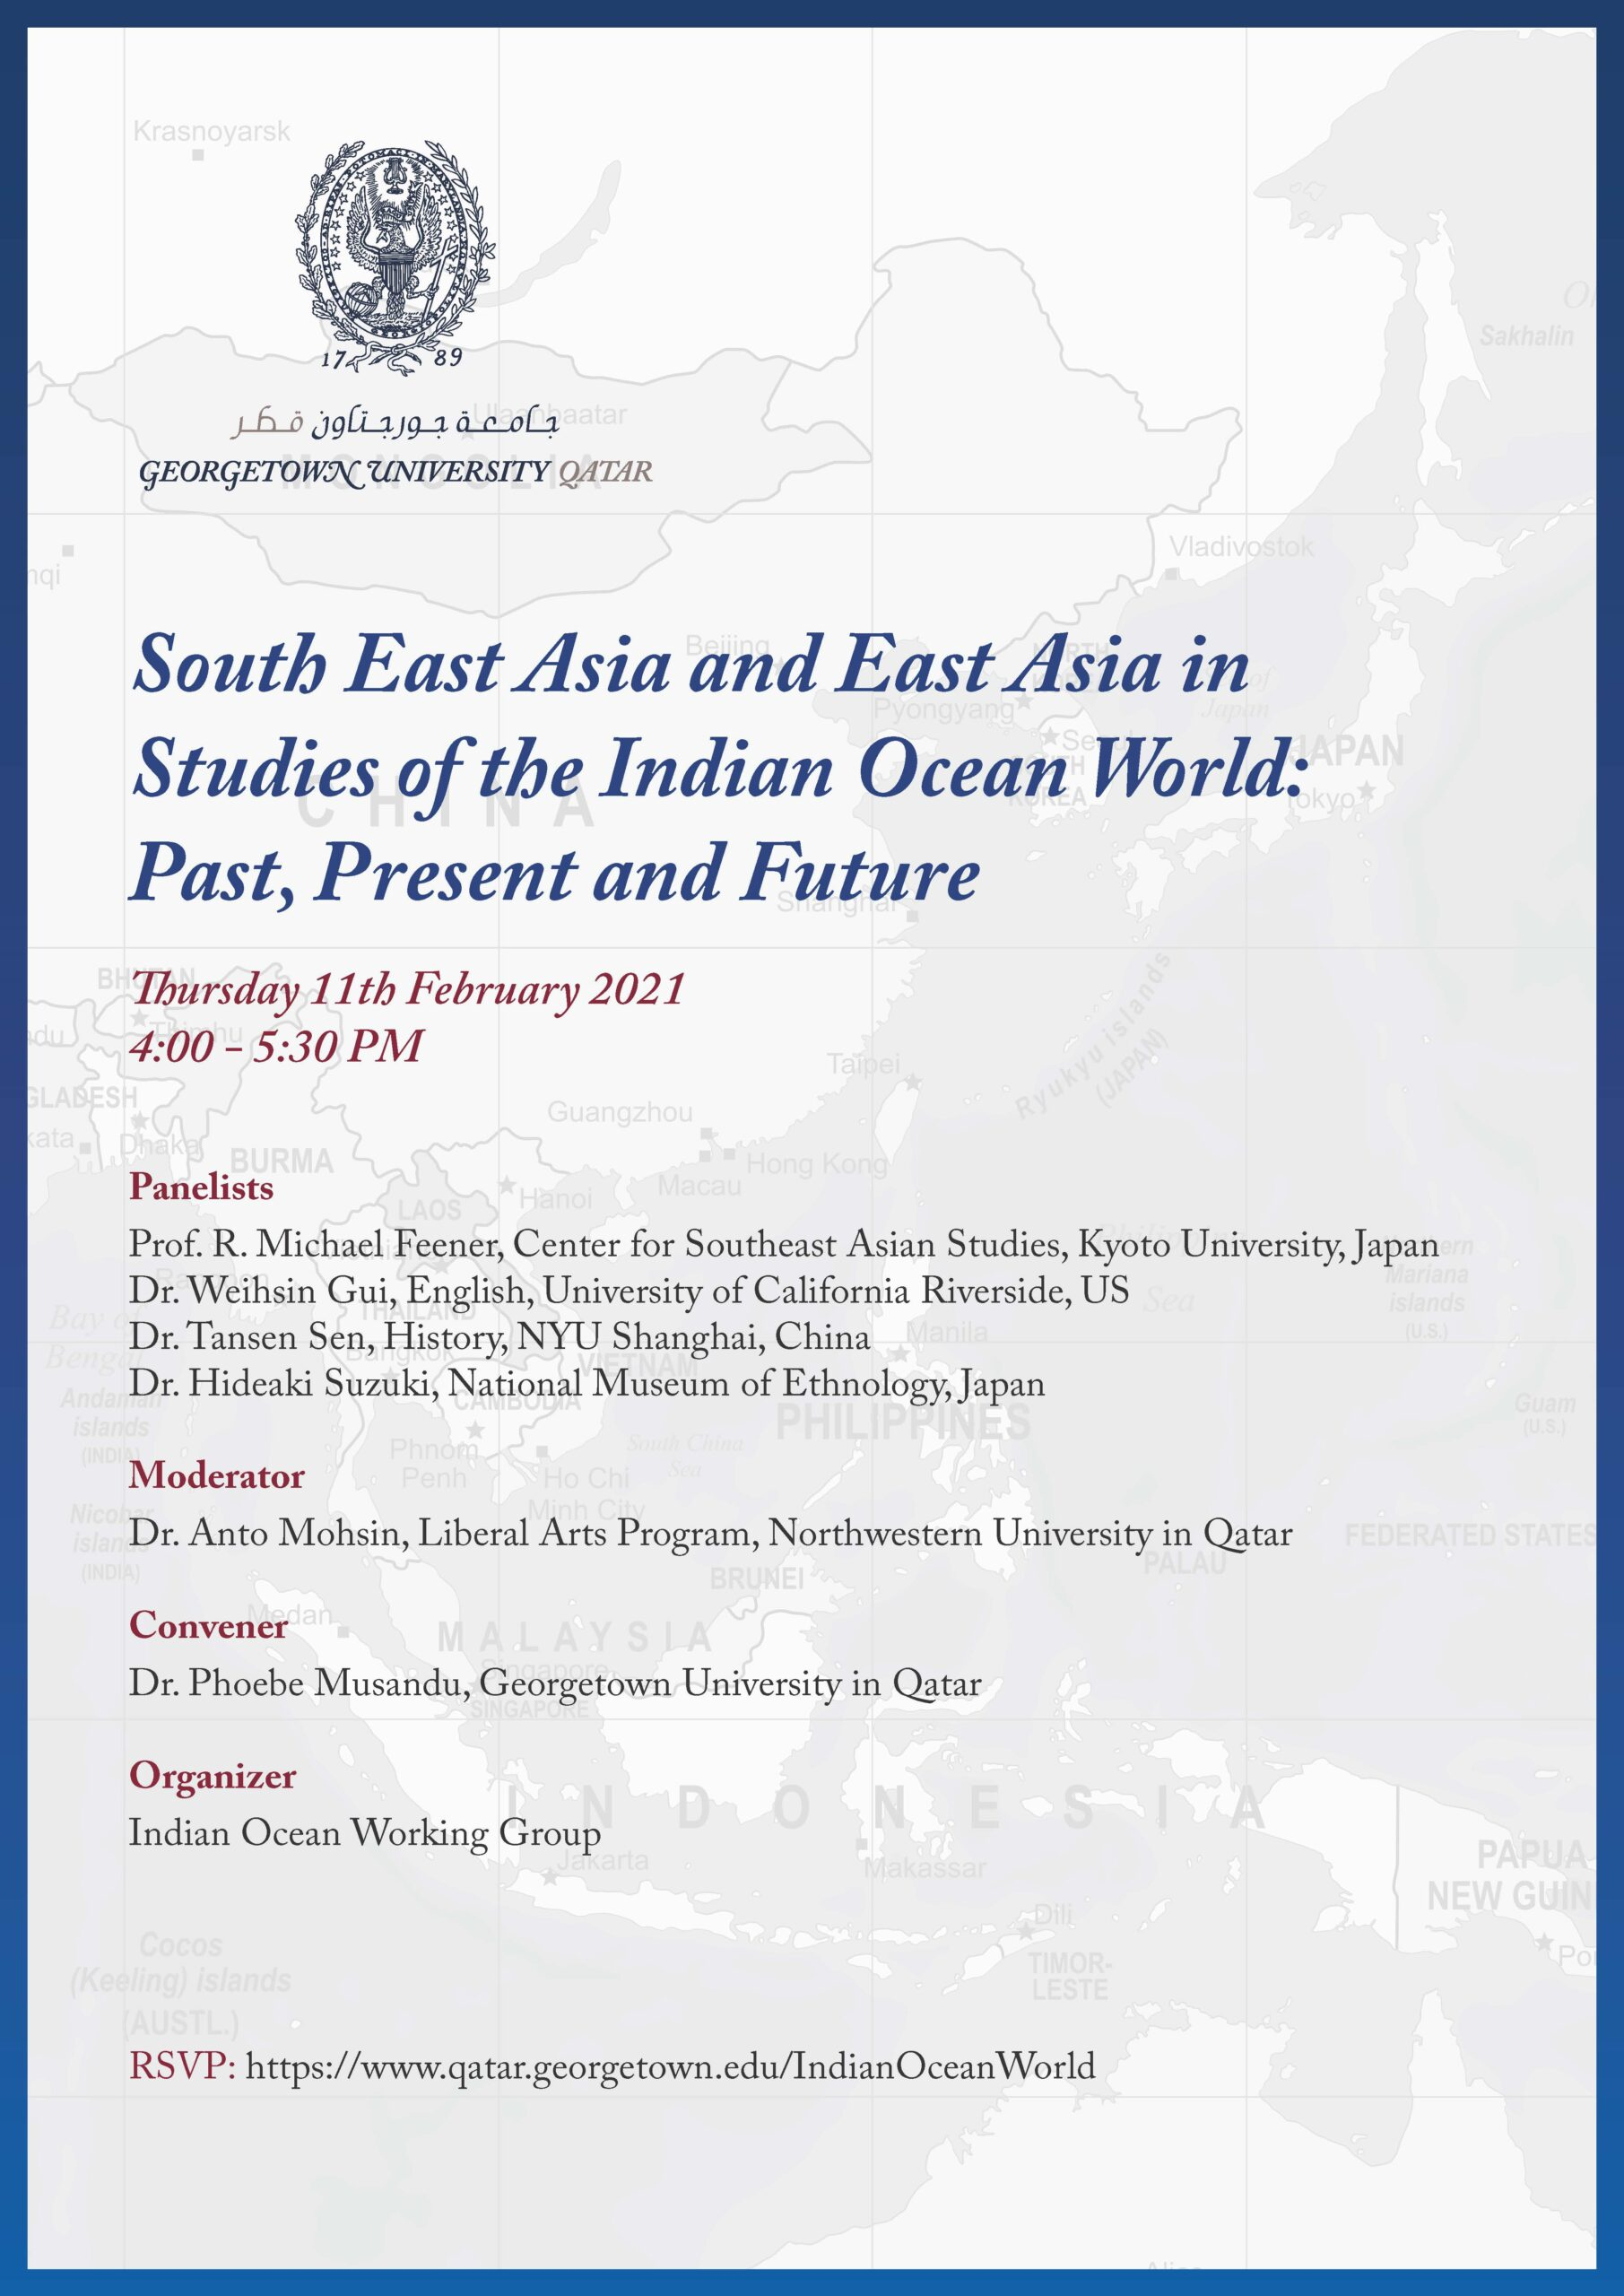 Text reads: South East Asia and East Asia in Studies of the Indian Ocean World: Past, Present and Future   Thursday 11th February 2021 4:00 - 5:30 PM   Panelists: Prof. R. Michael Feener, Center for Southeast Asian Studies, Kyoto University, Japan Dr. Weihsin Gui, English, University of California Riverside, US Dr. Tansen Sen, History, NYU Shanghai, China Dr. Hideaki Suzuki, National Museum of Ethnology, Japan   Moderator Dr. Anto Mohsin, Liberal Arts Program, Northwestern University in Qatar   Moderator Dr. Anto Mohsin, Liberal Arts Program, Northwestern University in Qatar